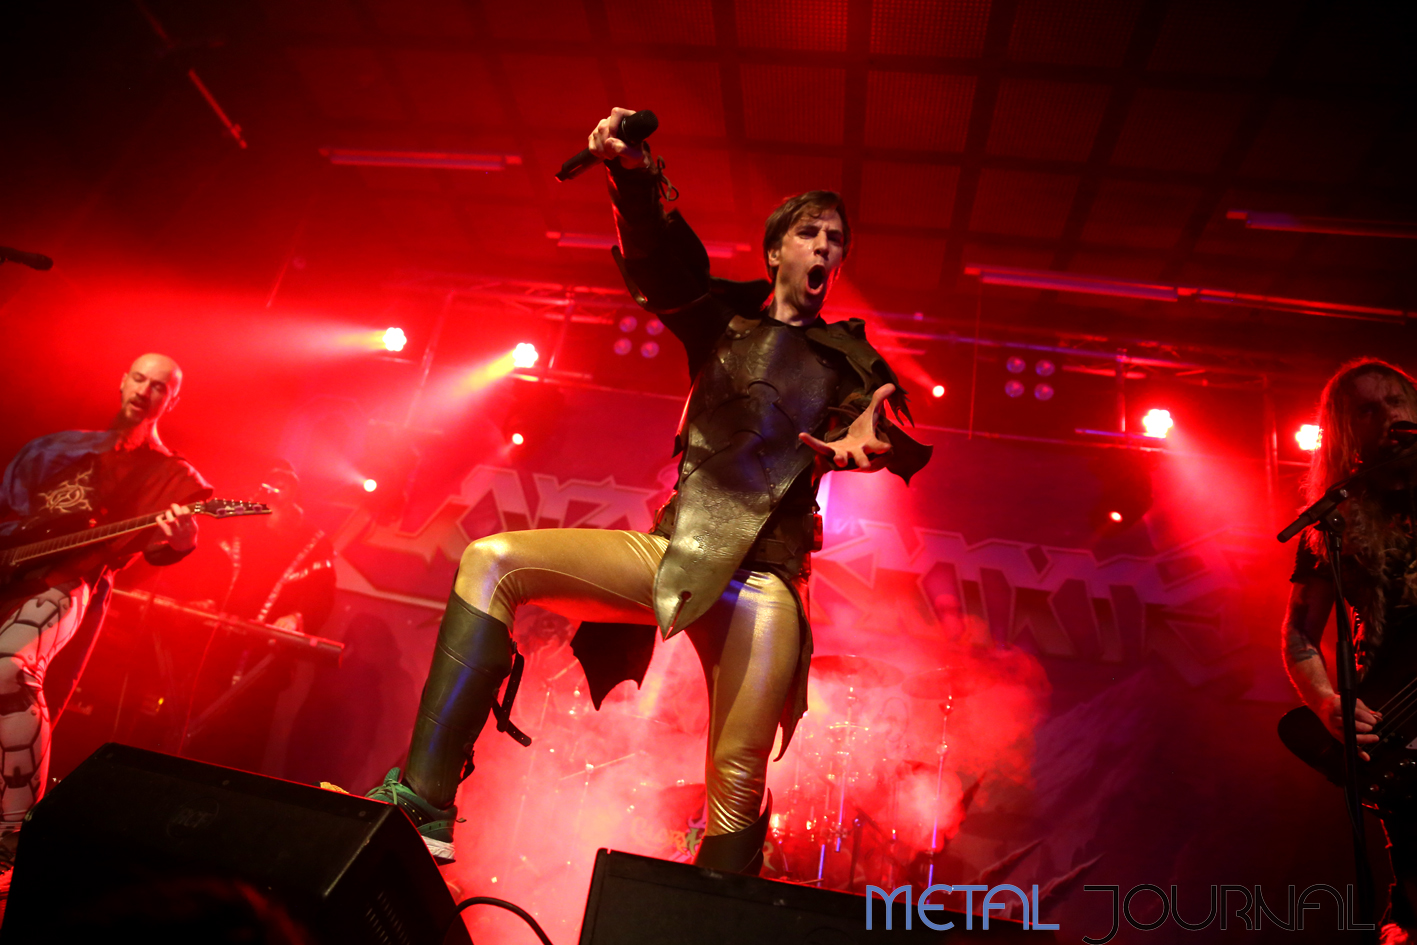 gloryhammer - metal journal 2018 pic 7